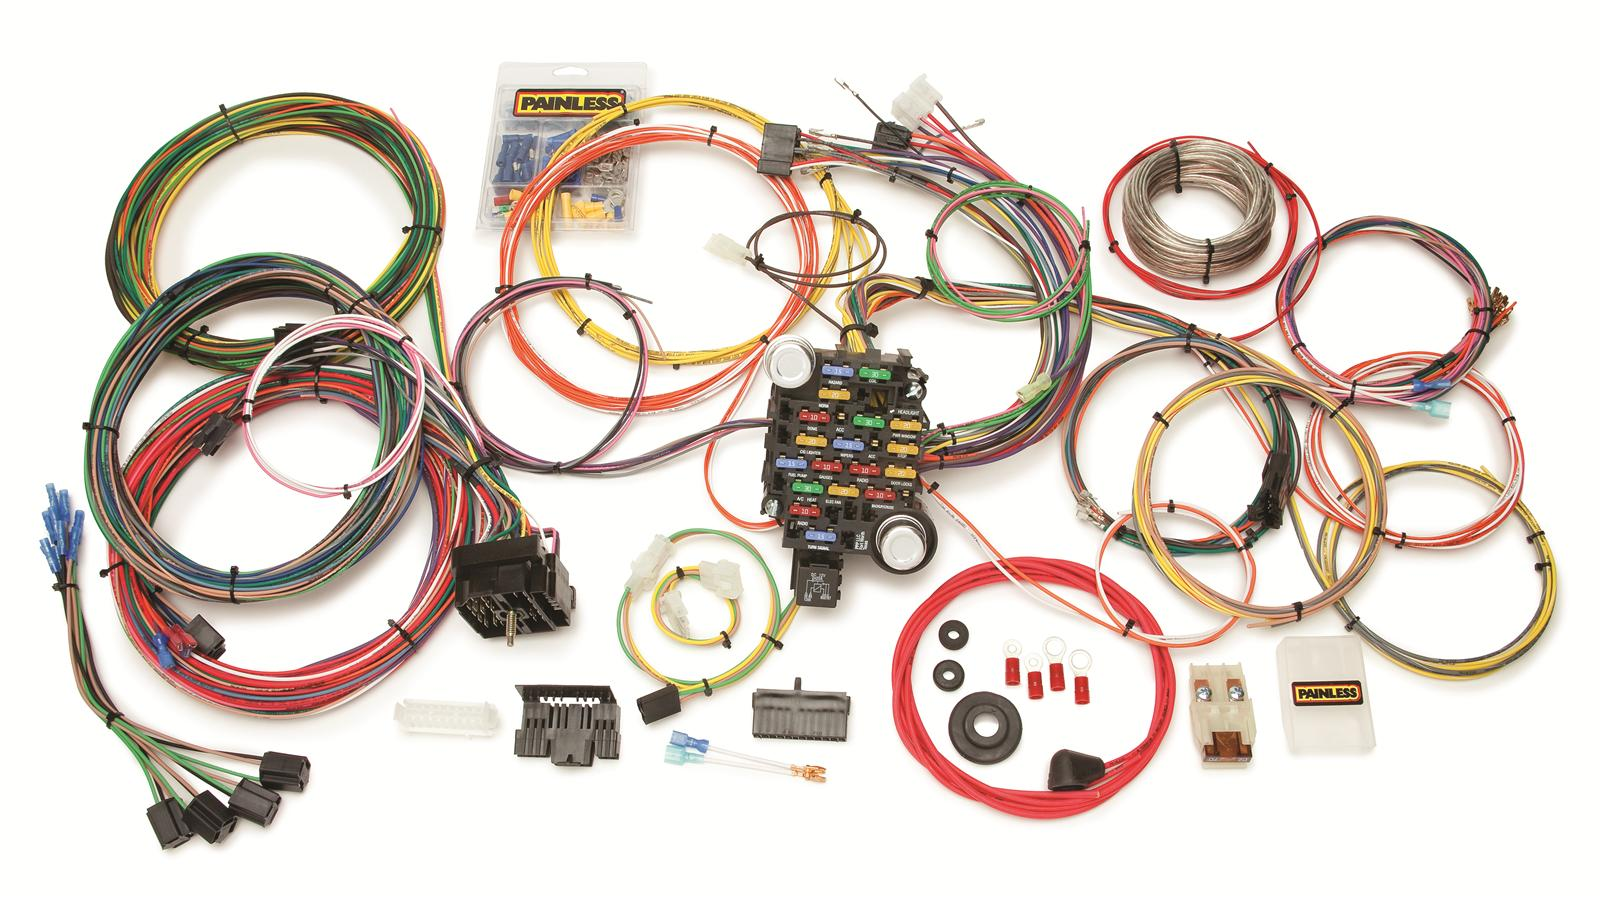 prf 10205_xl painless performance gmc chevy truck harnesses 10205 free painless wiring harness 1958 chevy truck at mr168.co